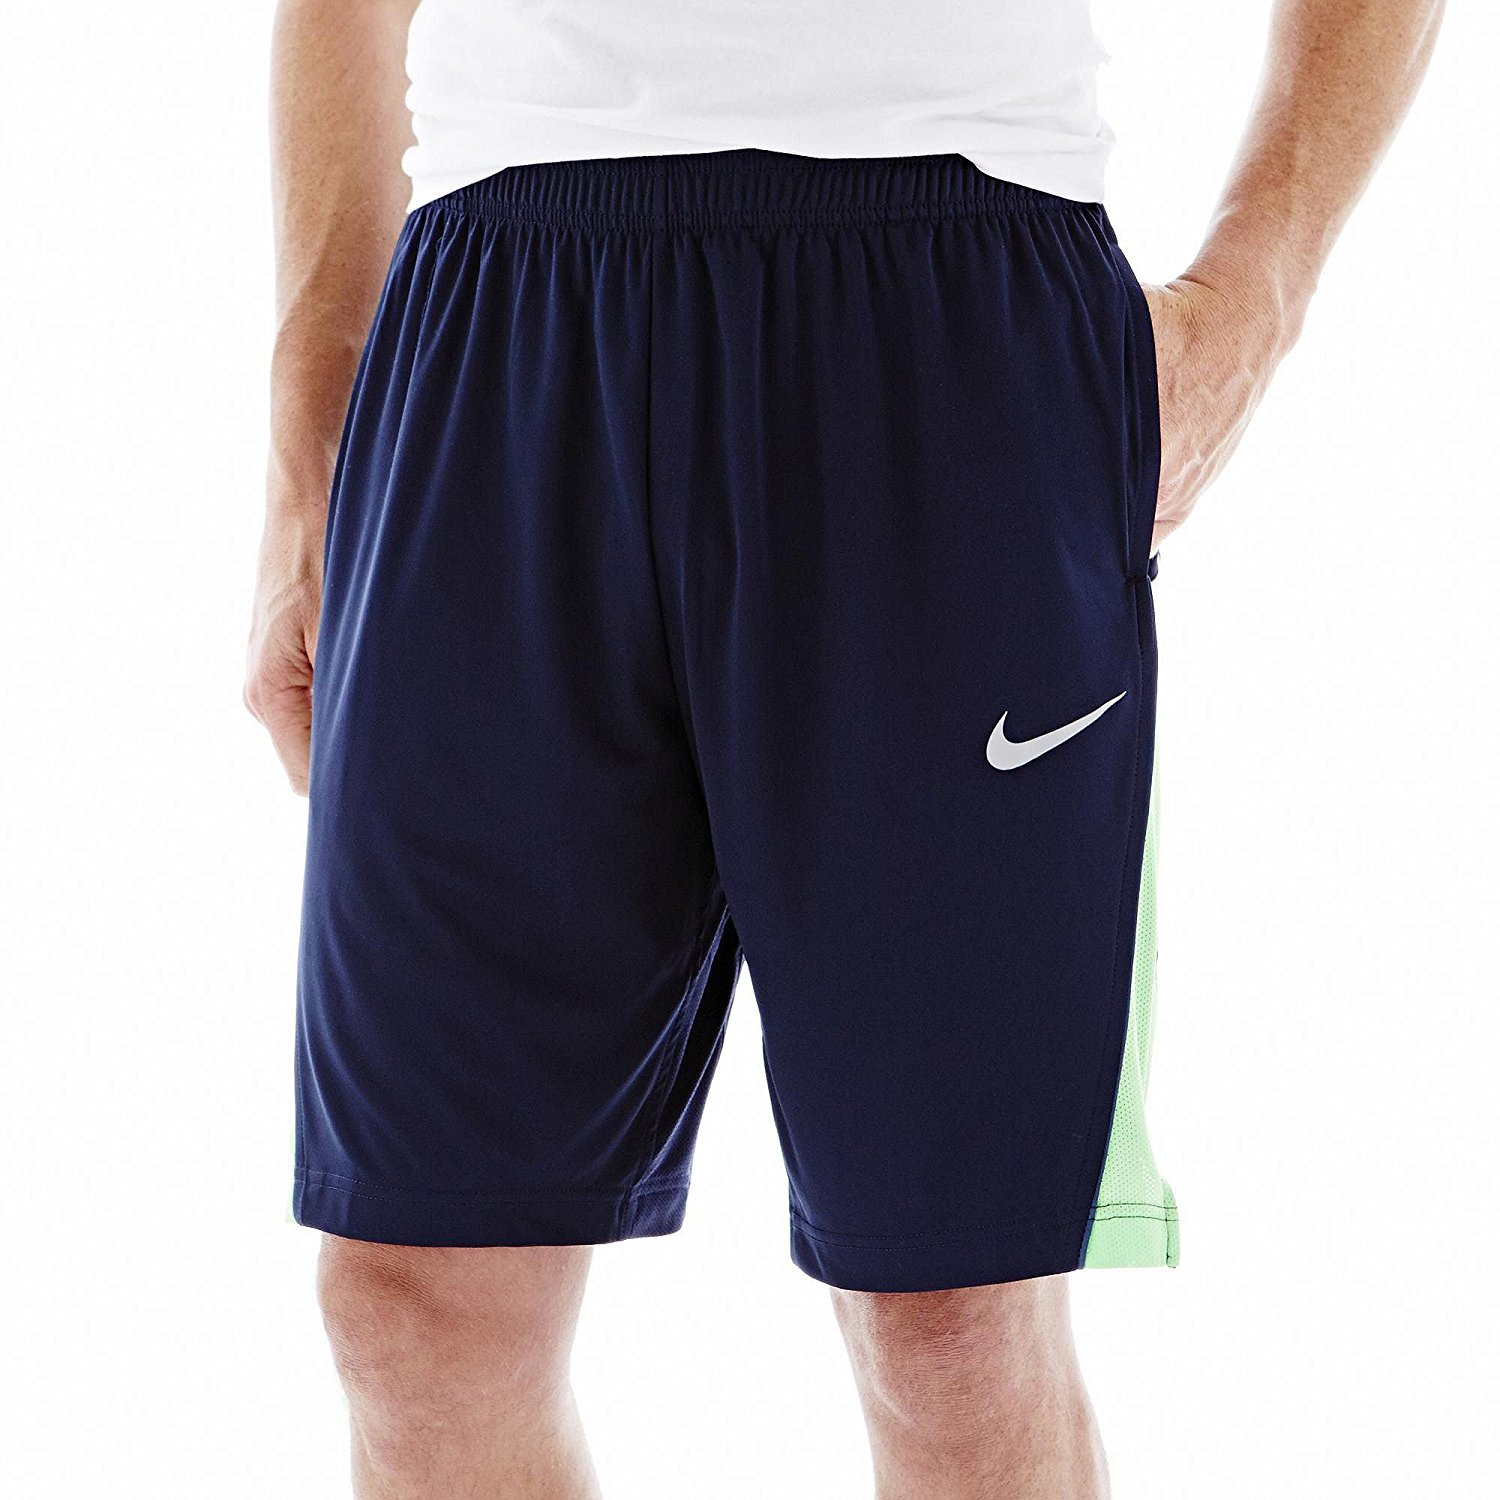 9e9e0fd602ae Get Quotations · Nike Mens Legacy Dri-Fit Basketball Shorts Lime Green  Navy